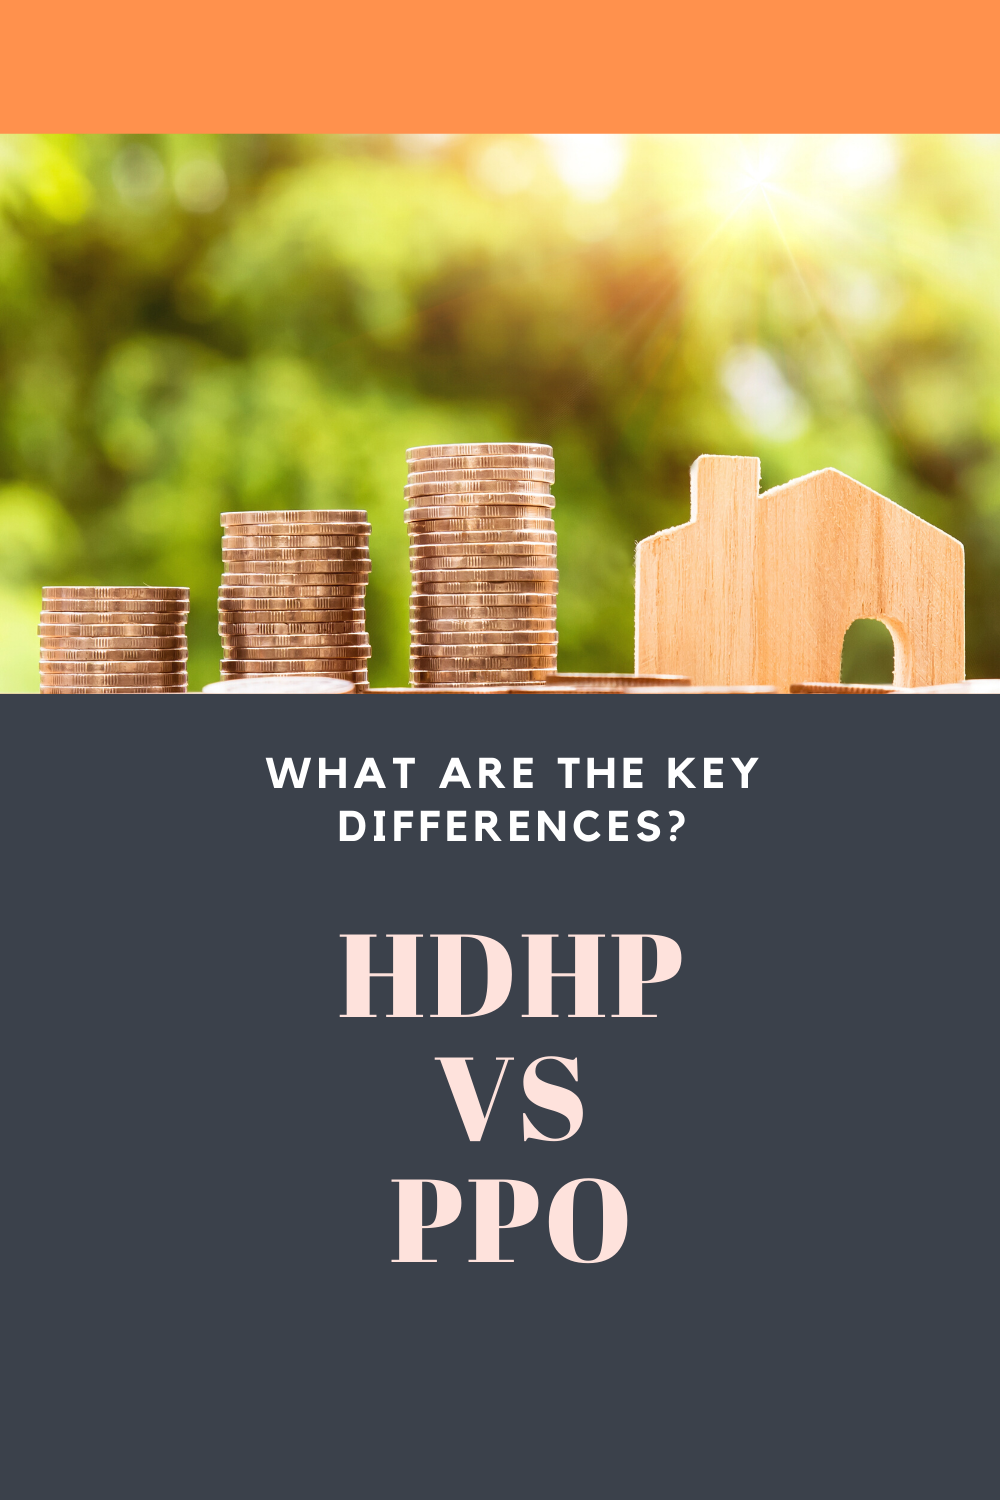 11 Key Differences HDHP vs. PPO Best Rx For Savings in